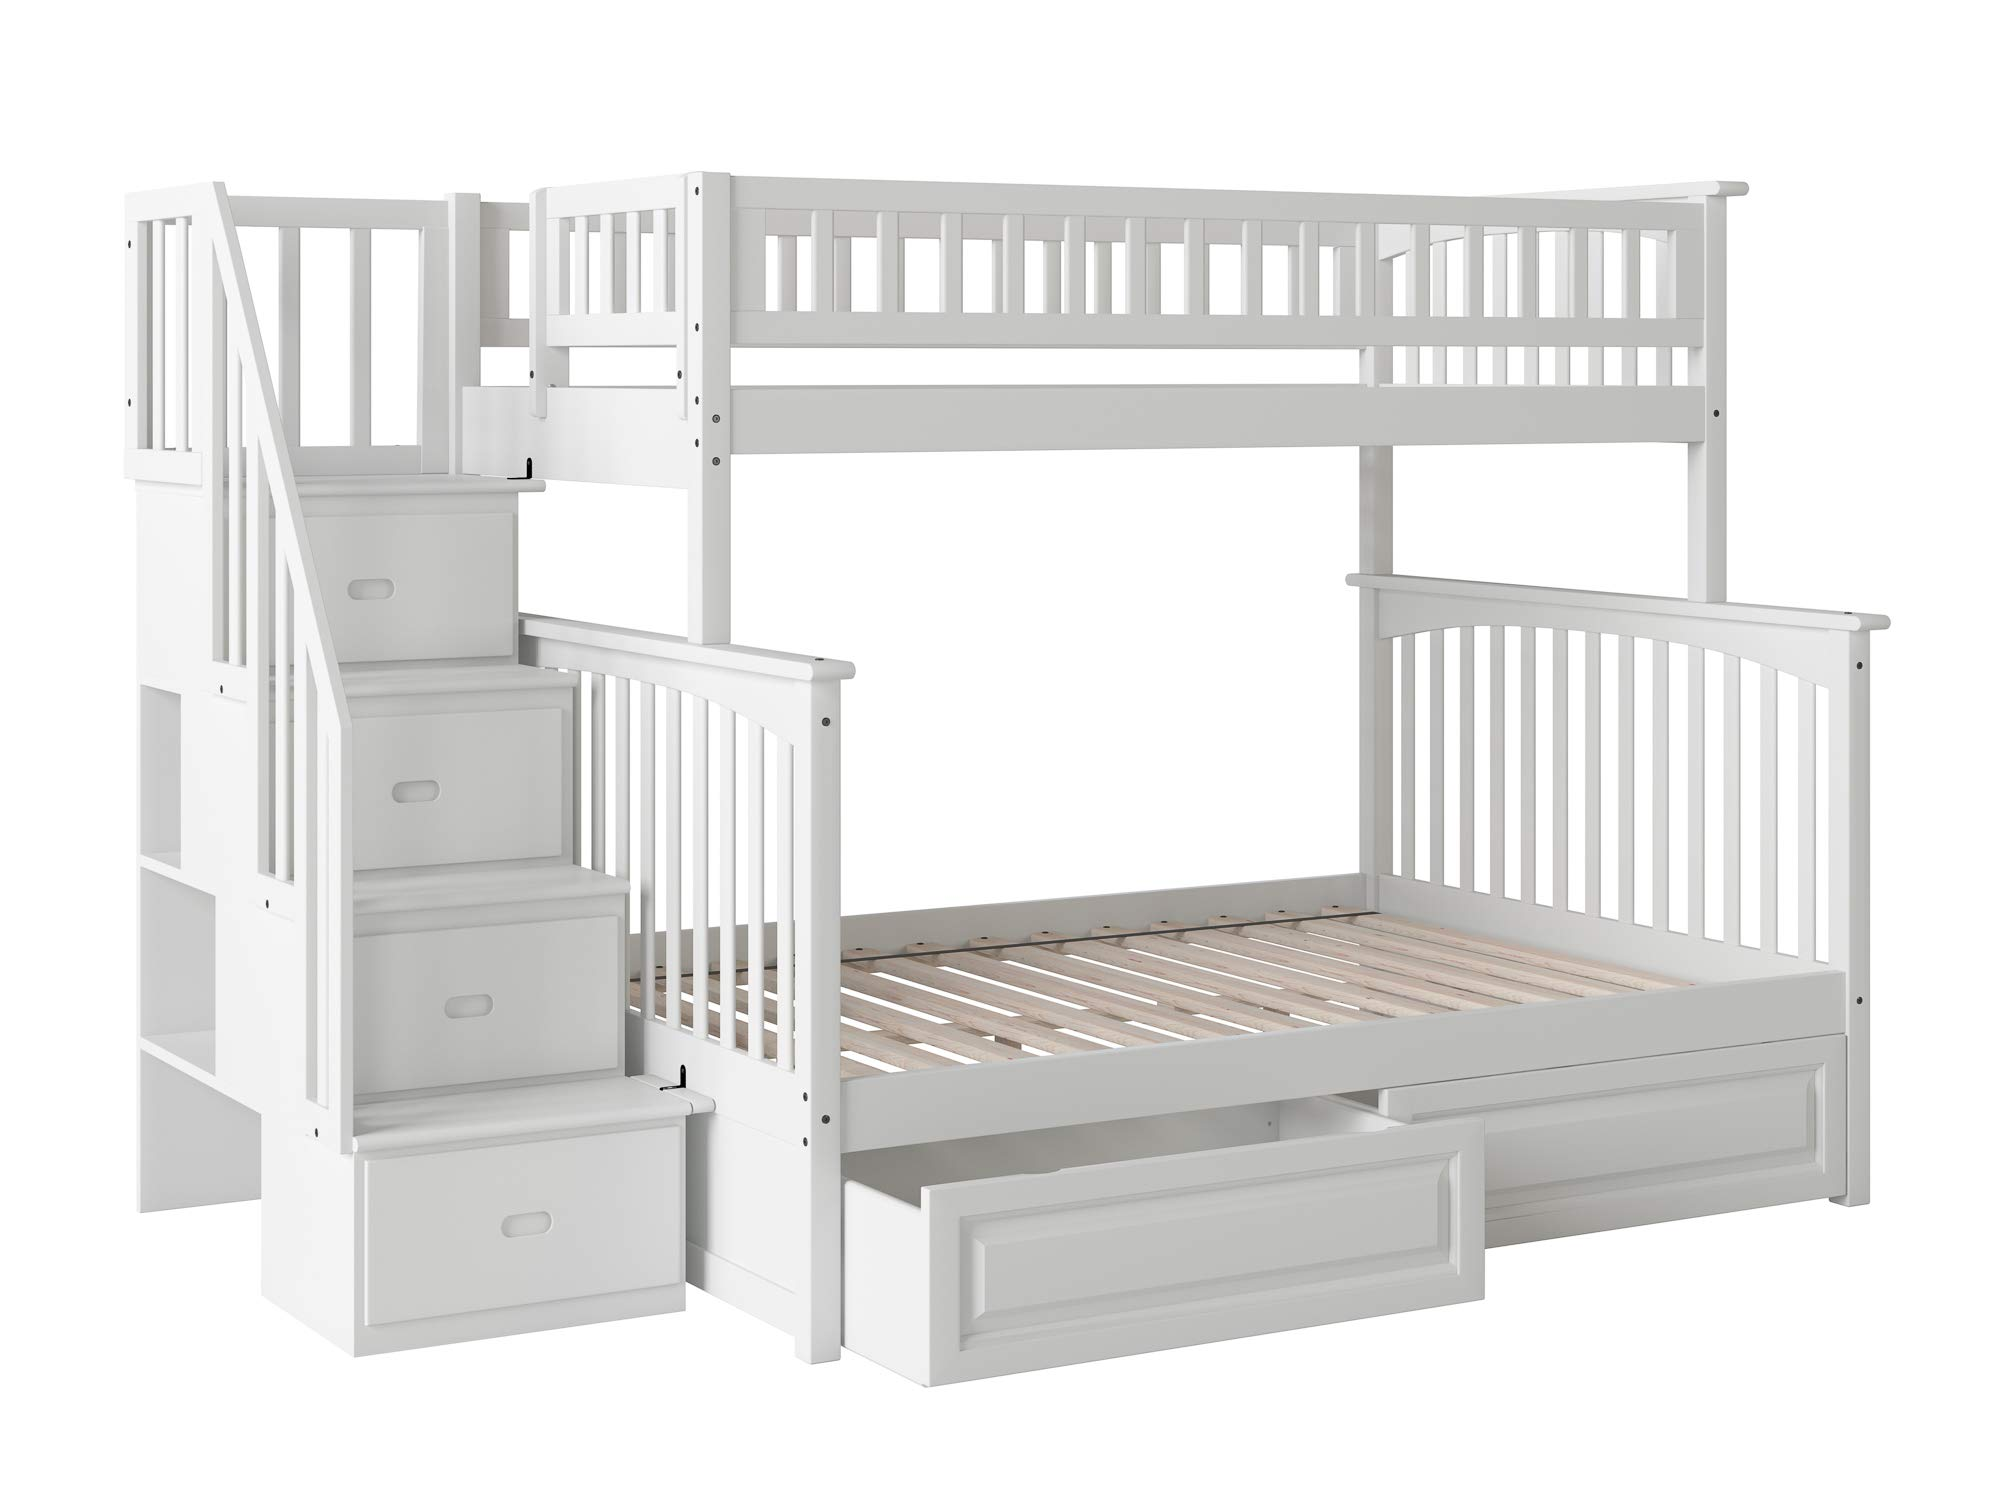 Atlantic Furniture Columbia Staircase Bunk Bed with Raised Panel Bed Drawers, Twin/Full, White by Atlantic Furniture